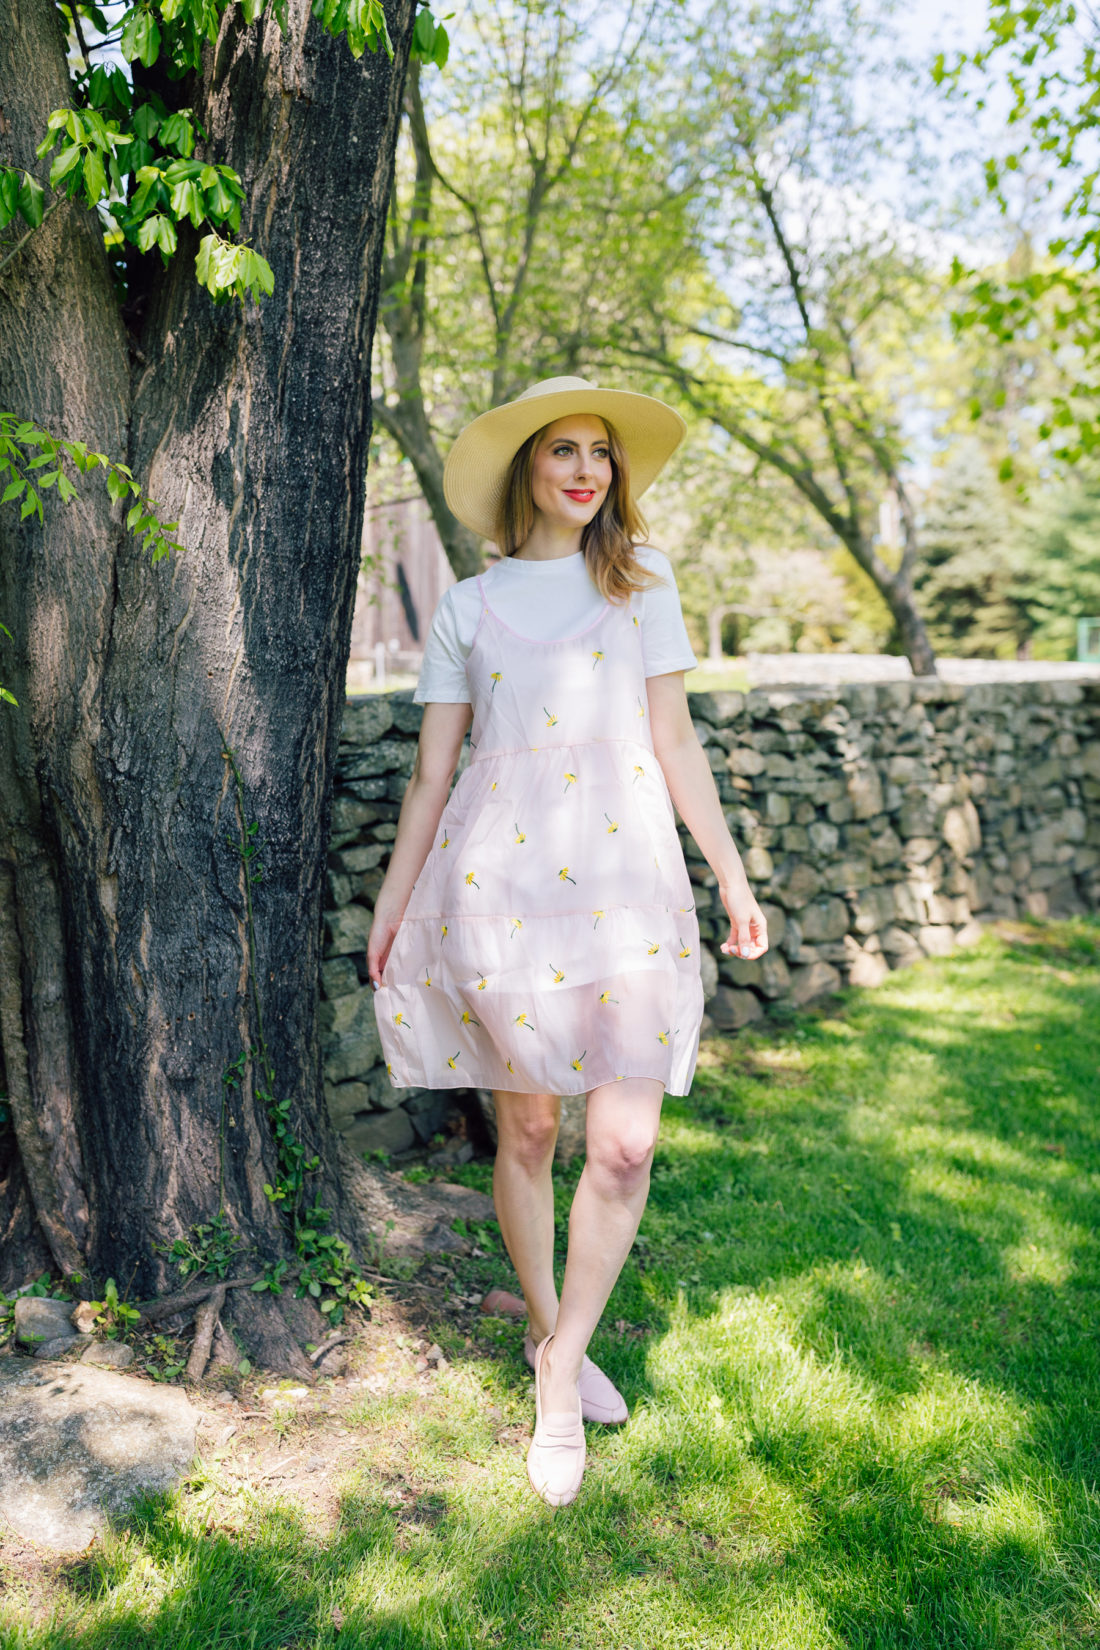 Eva Amurri Martino of Happily Eva After wears a chic t-shirt dress and sunhat